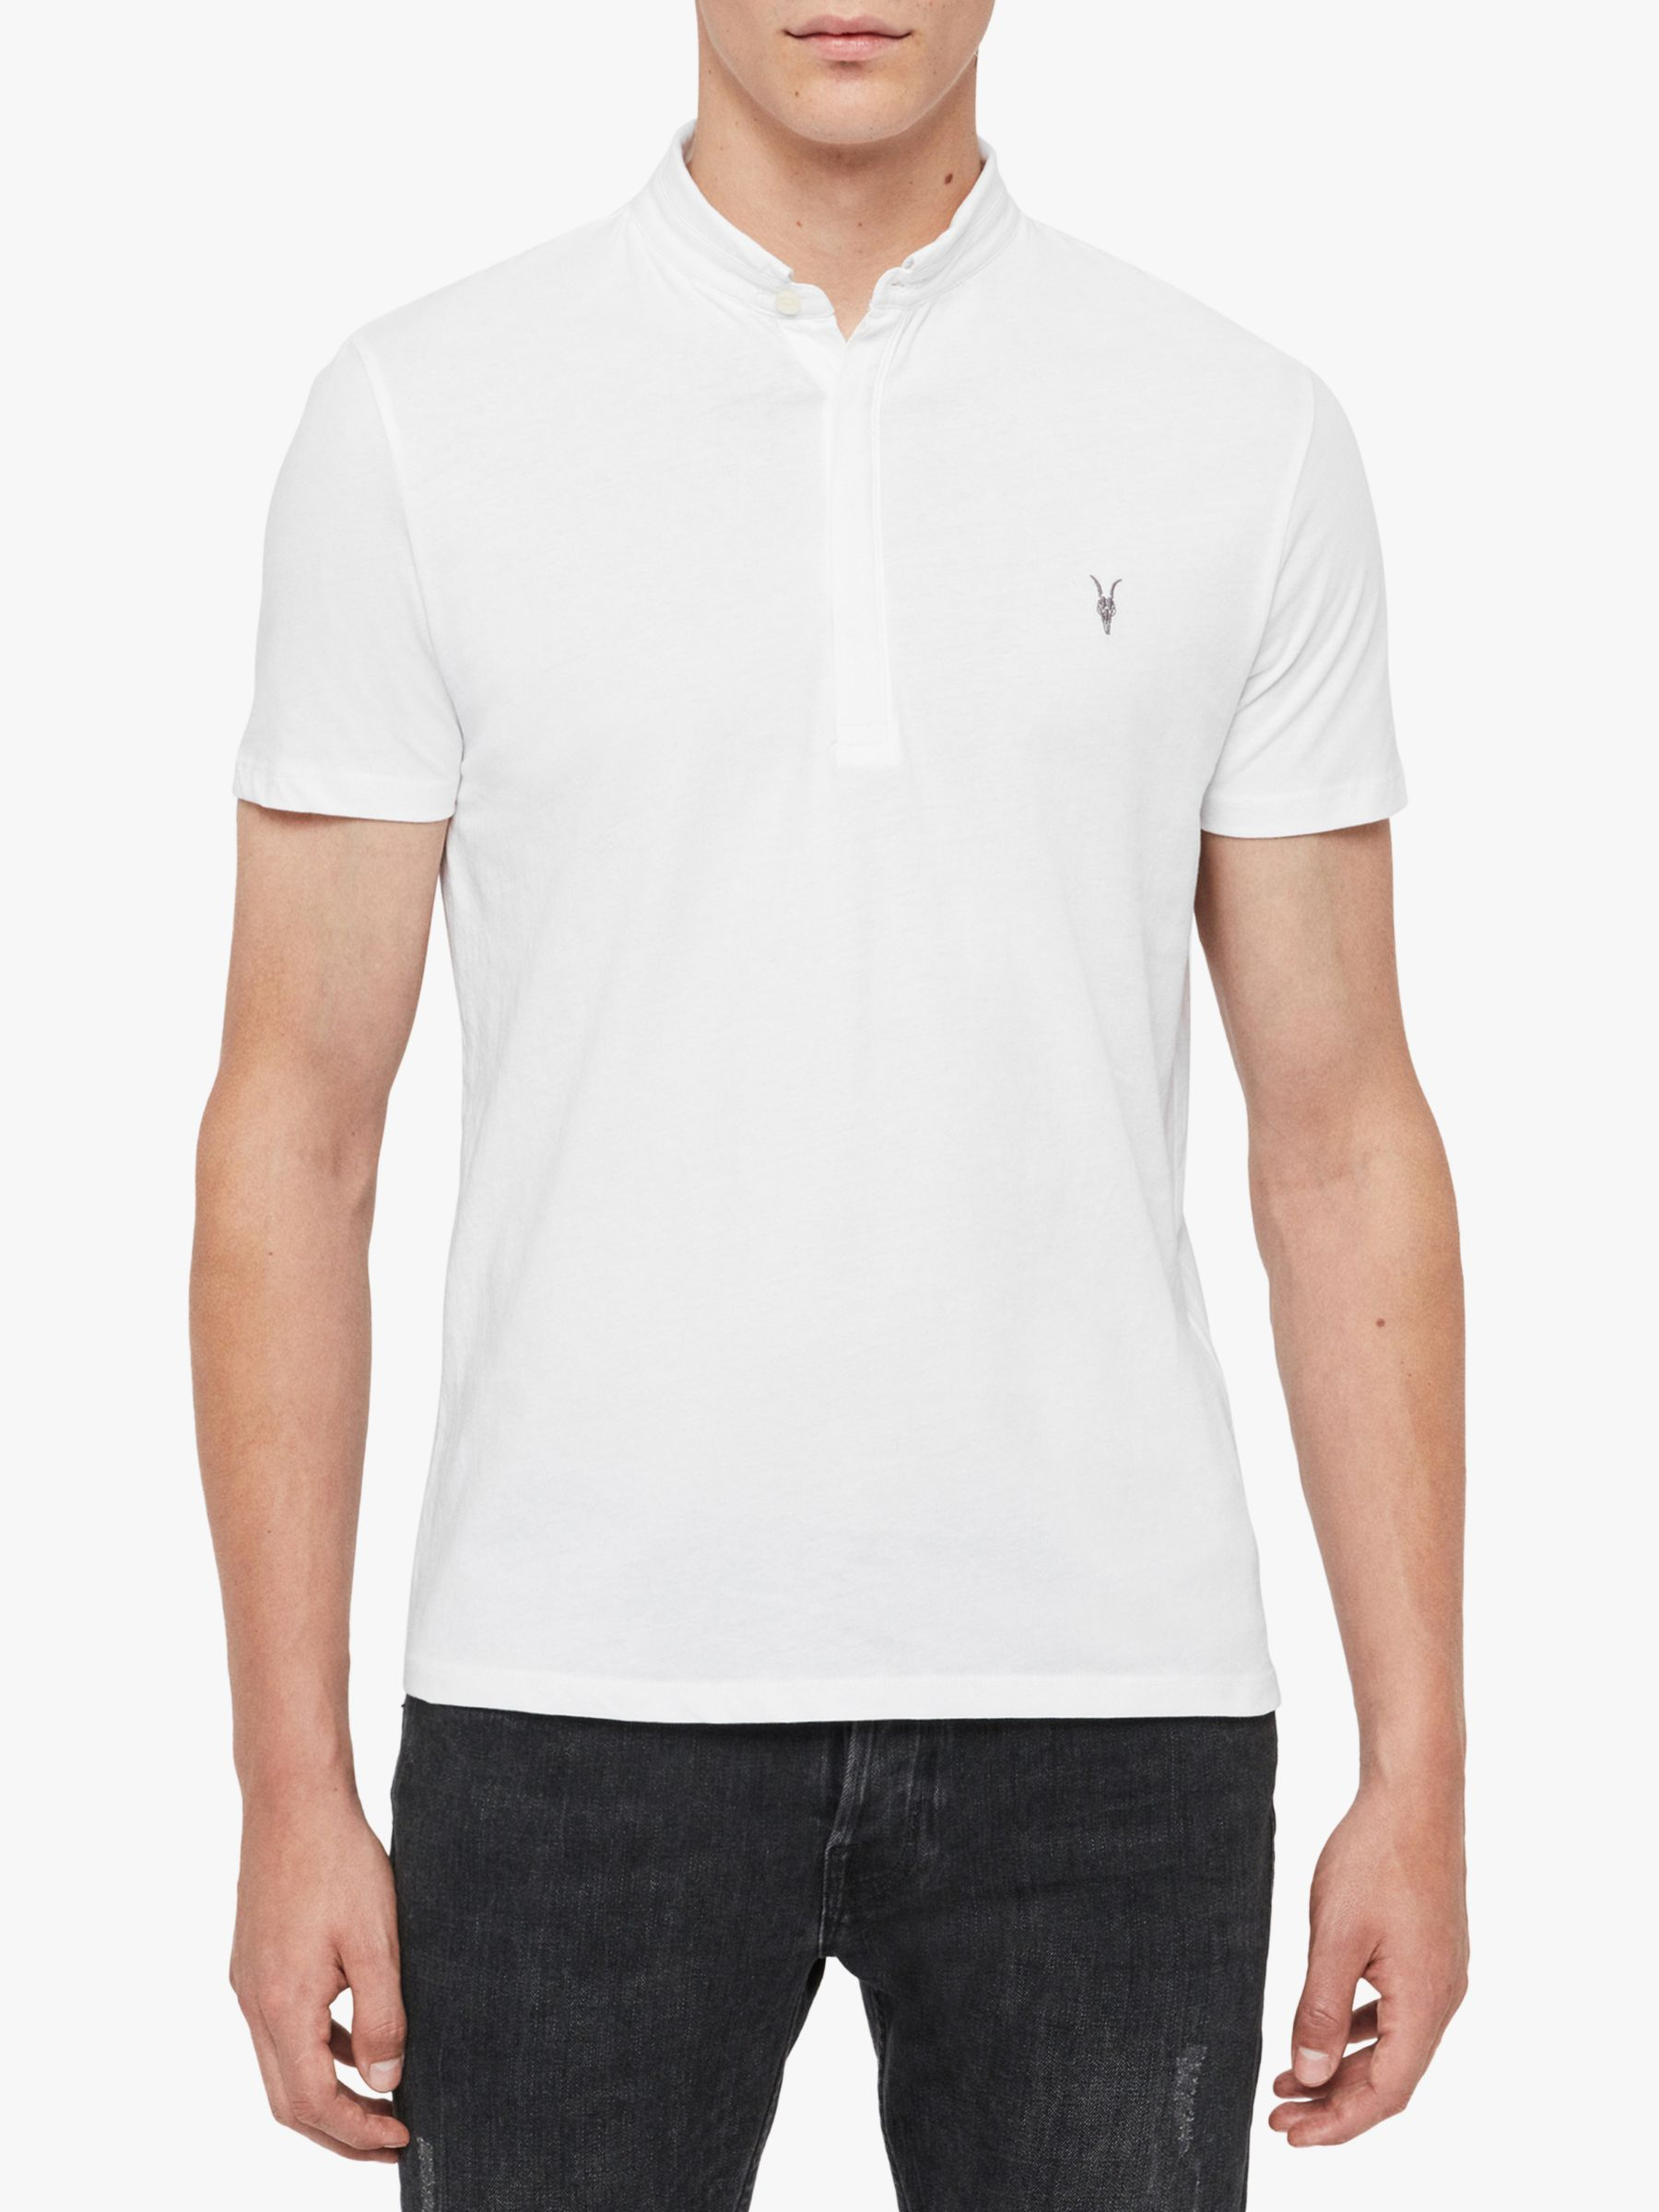 AllSaints AllSaints Grail Polo Shirt, Optic White